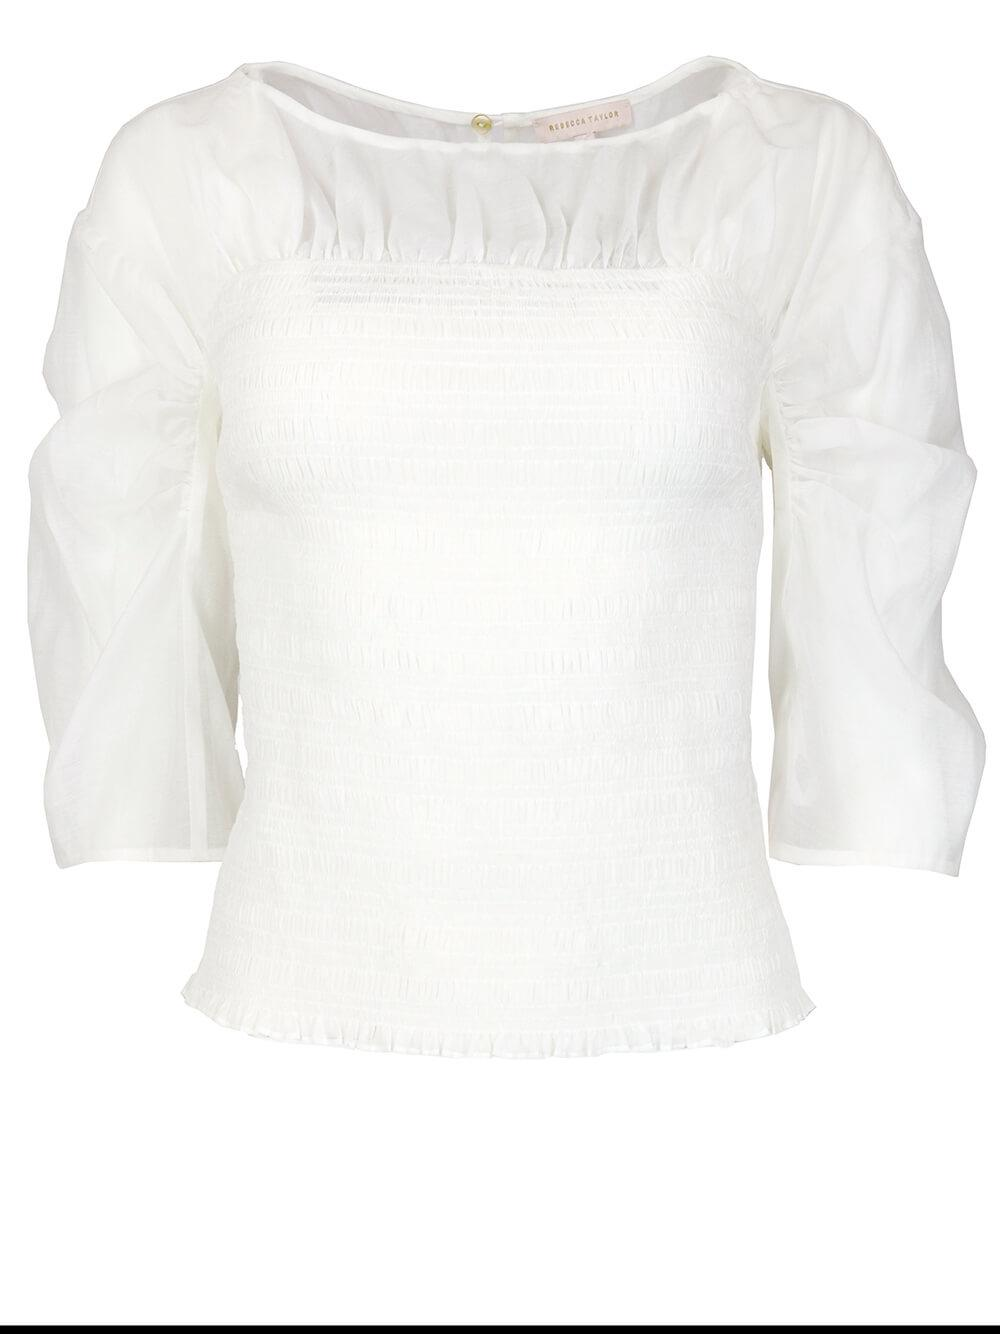 Ruched Organza Blouse